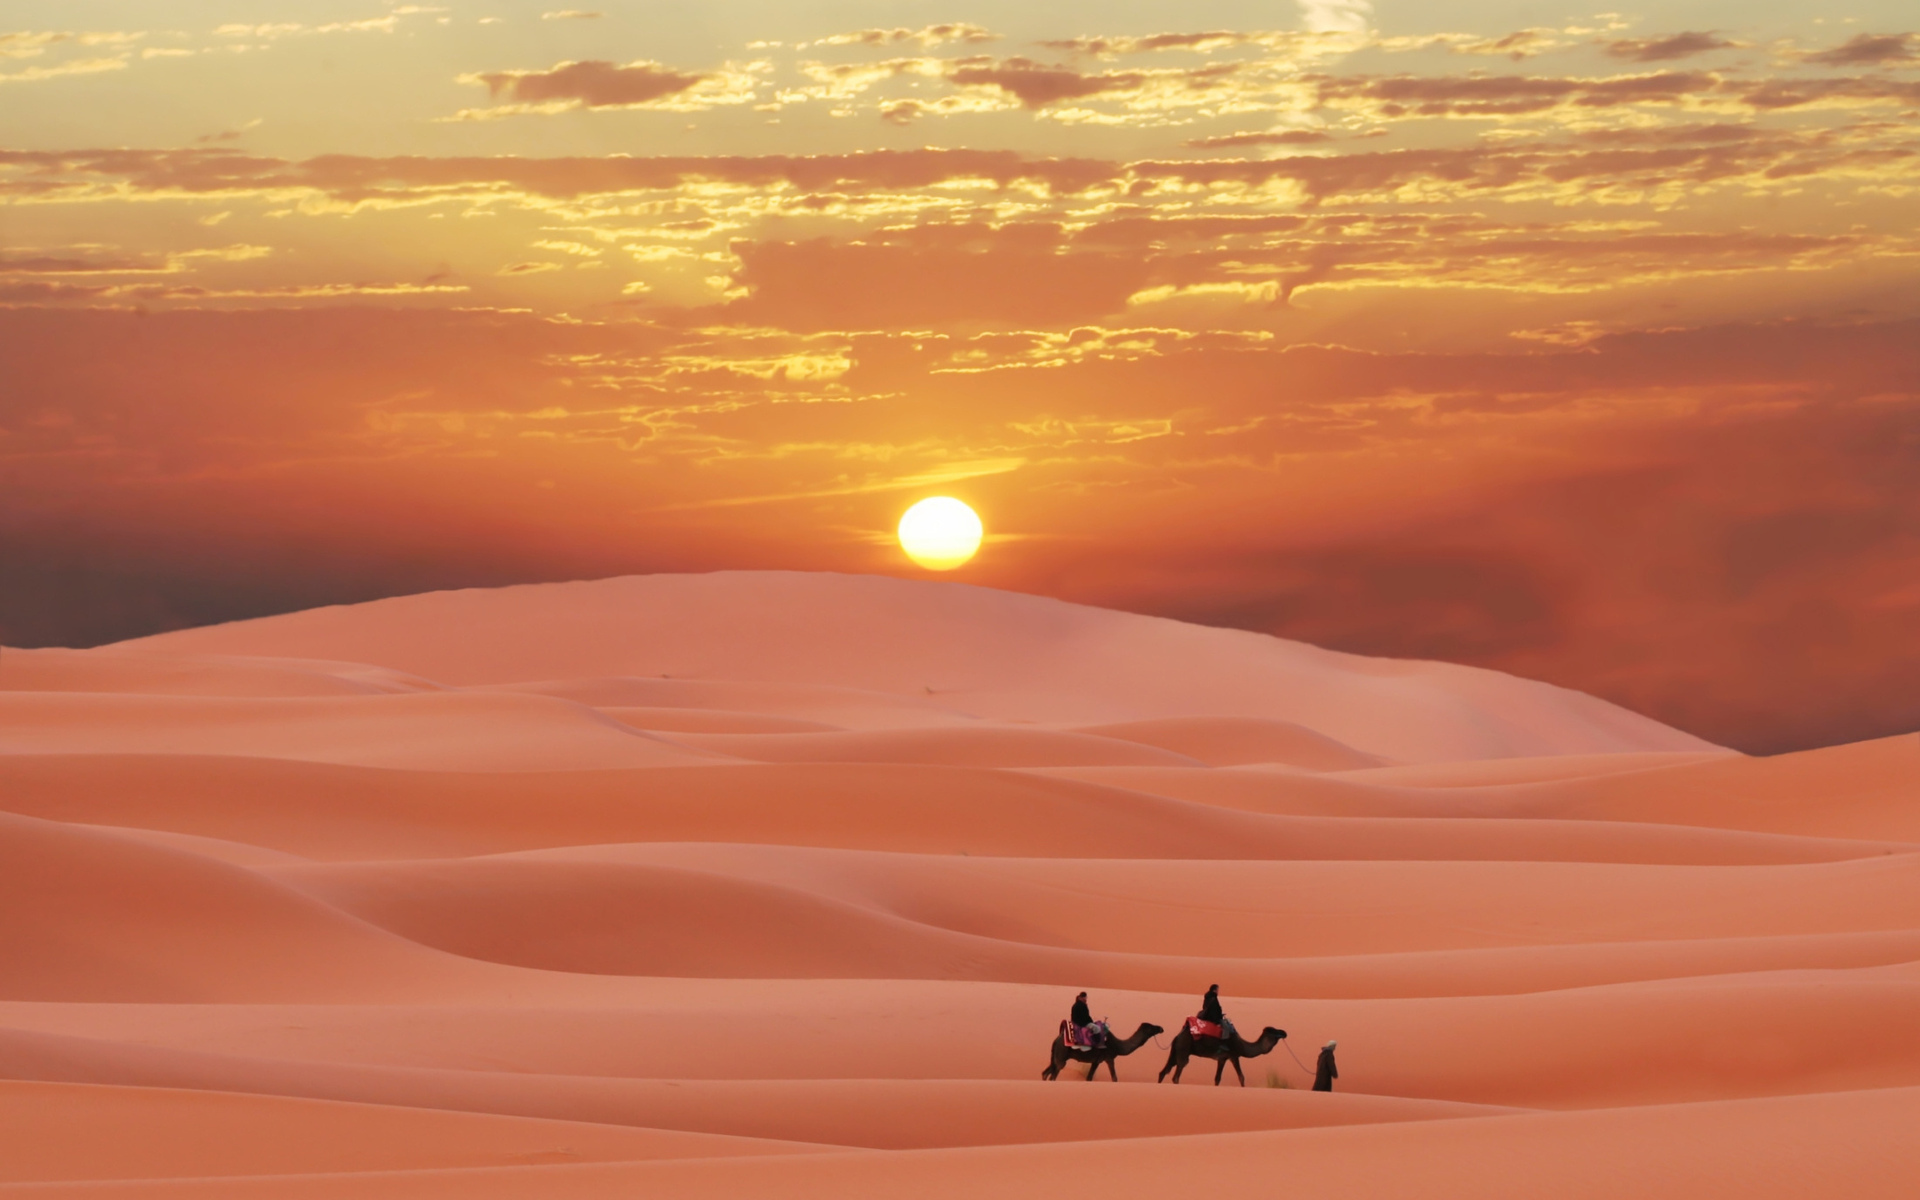 37568 download wallpaper Landscape, Desert, Camels screensavers and pictures for free